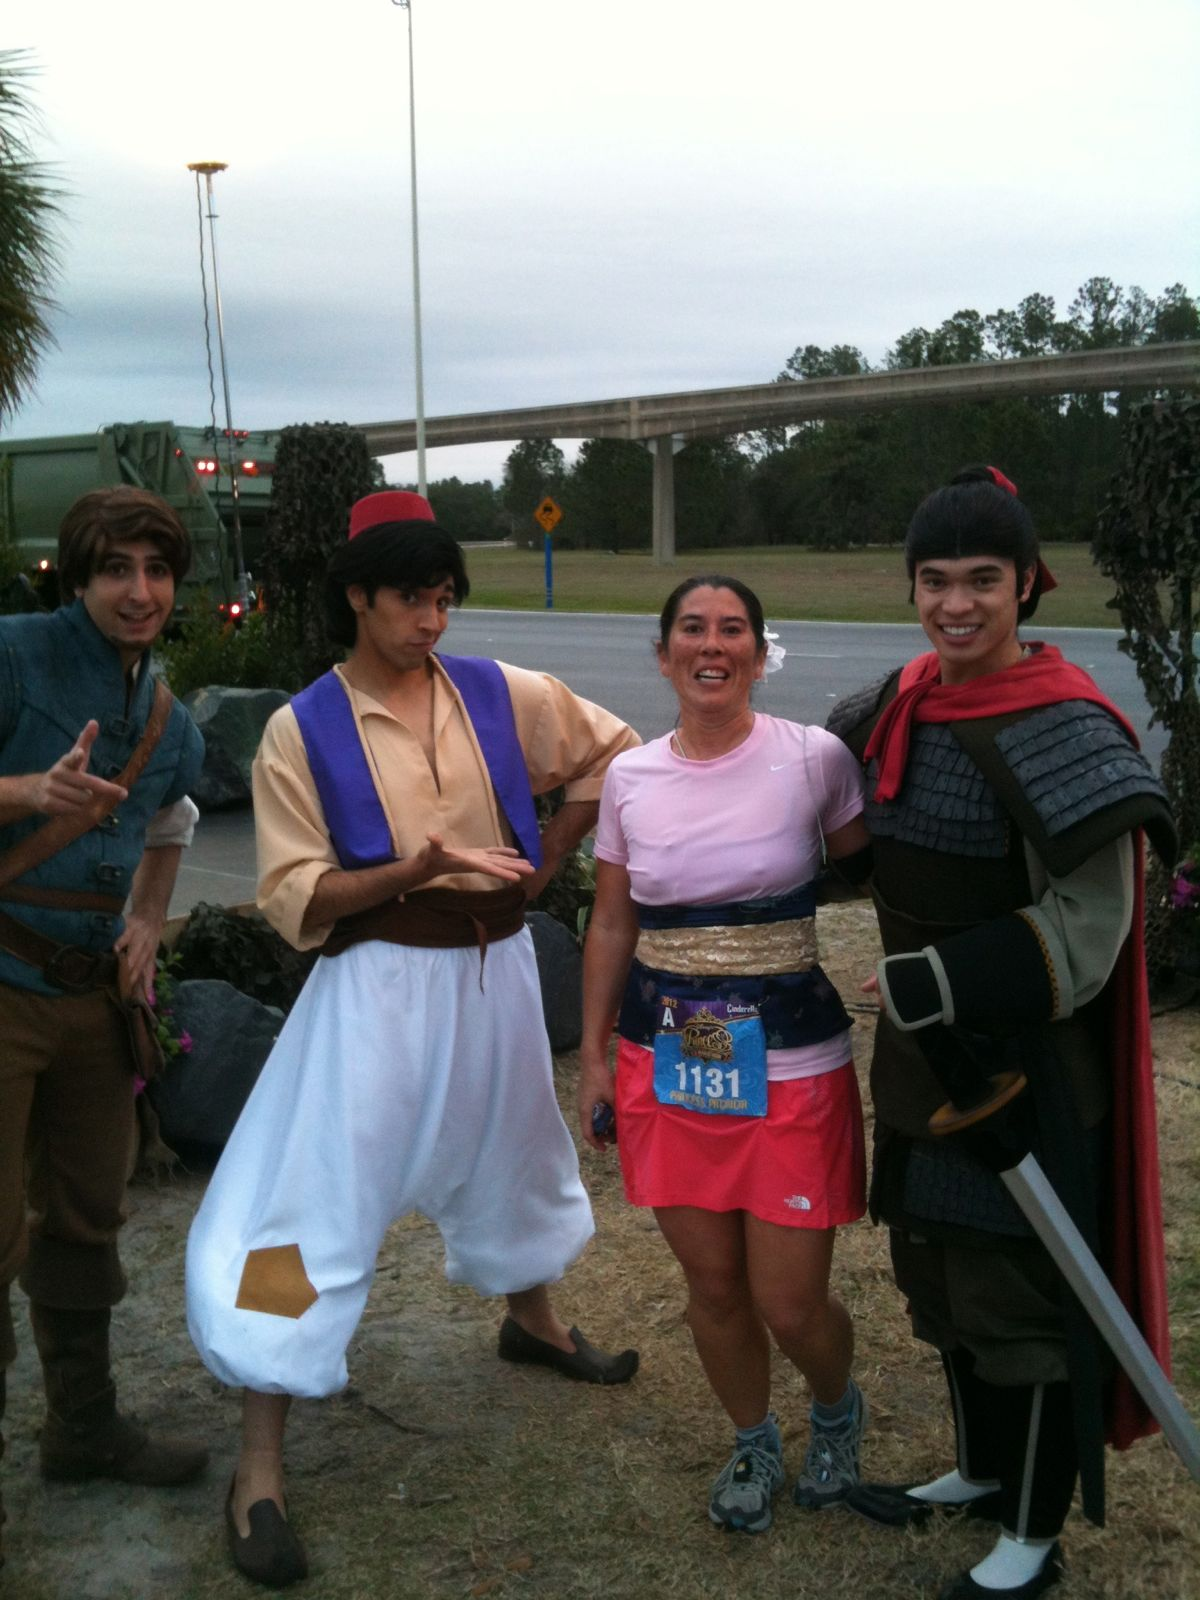 Flynn Rider Disney World 2013 Flynn rider it s remarkableFlynn Rider Disney World 2013